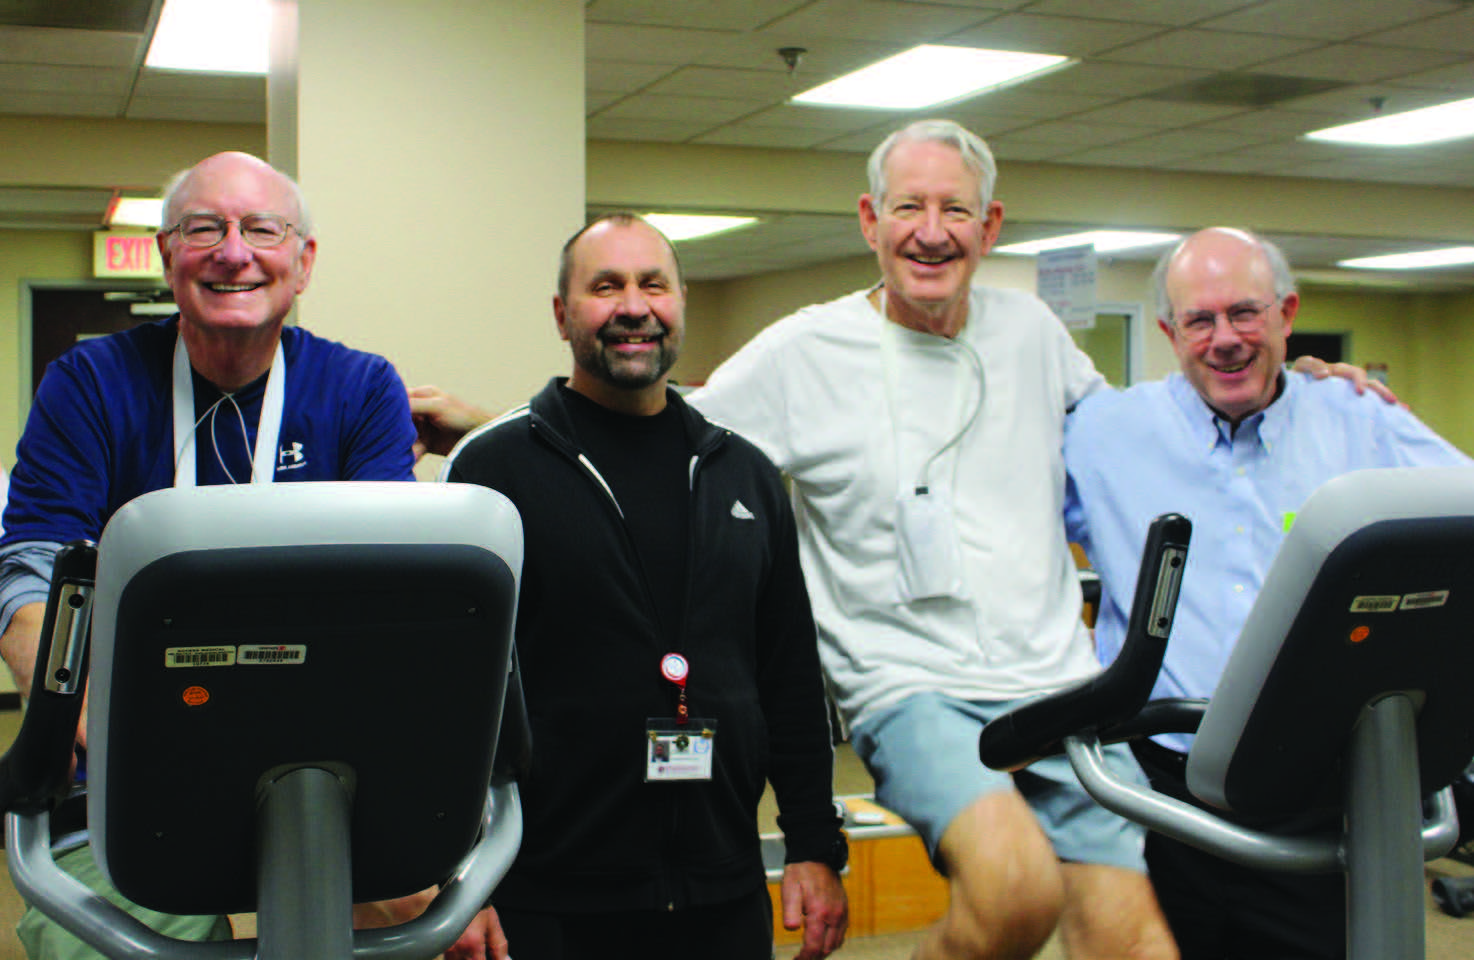 Chip Johnson, MD; Chris Spruiell; Paul Ambrose, MD; and cardiac rehab supervising physician Bob Montgomery, MD.